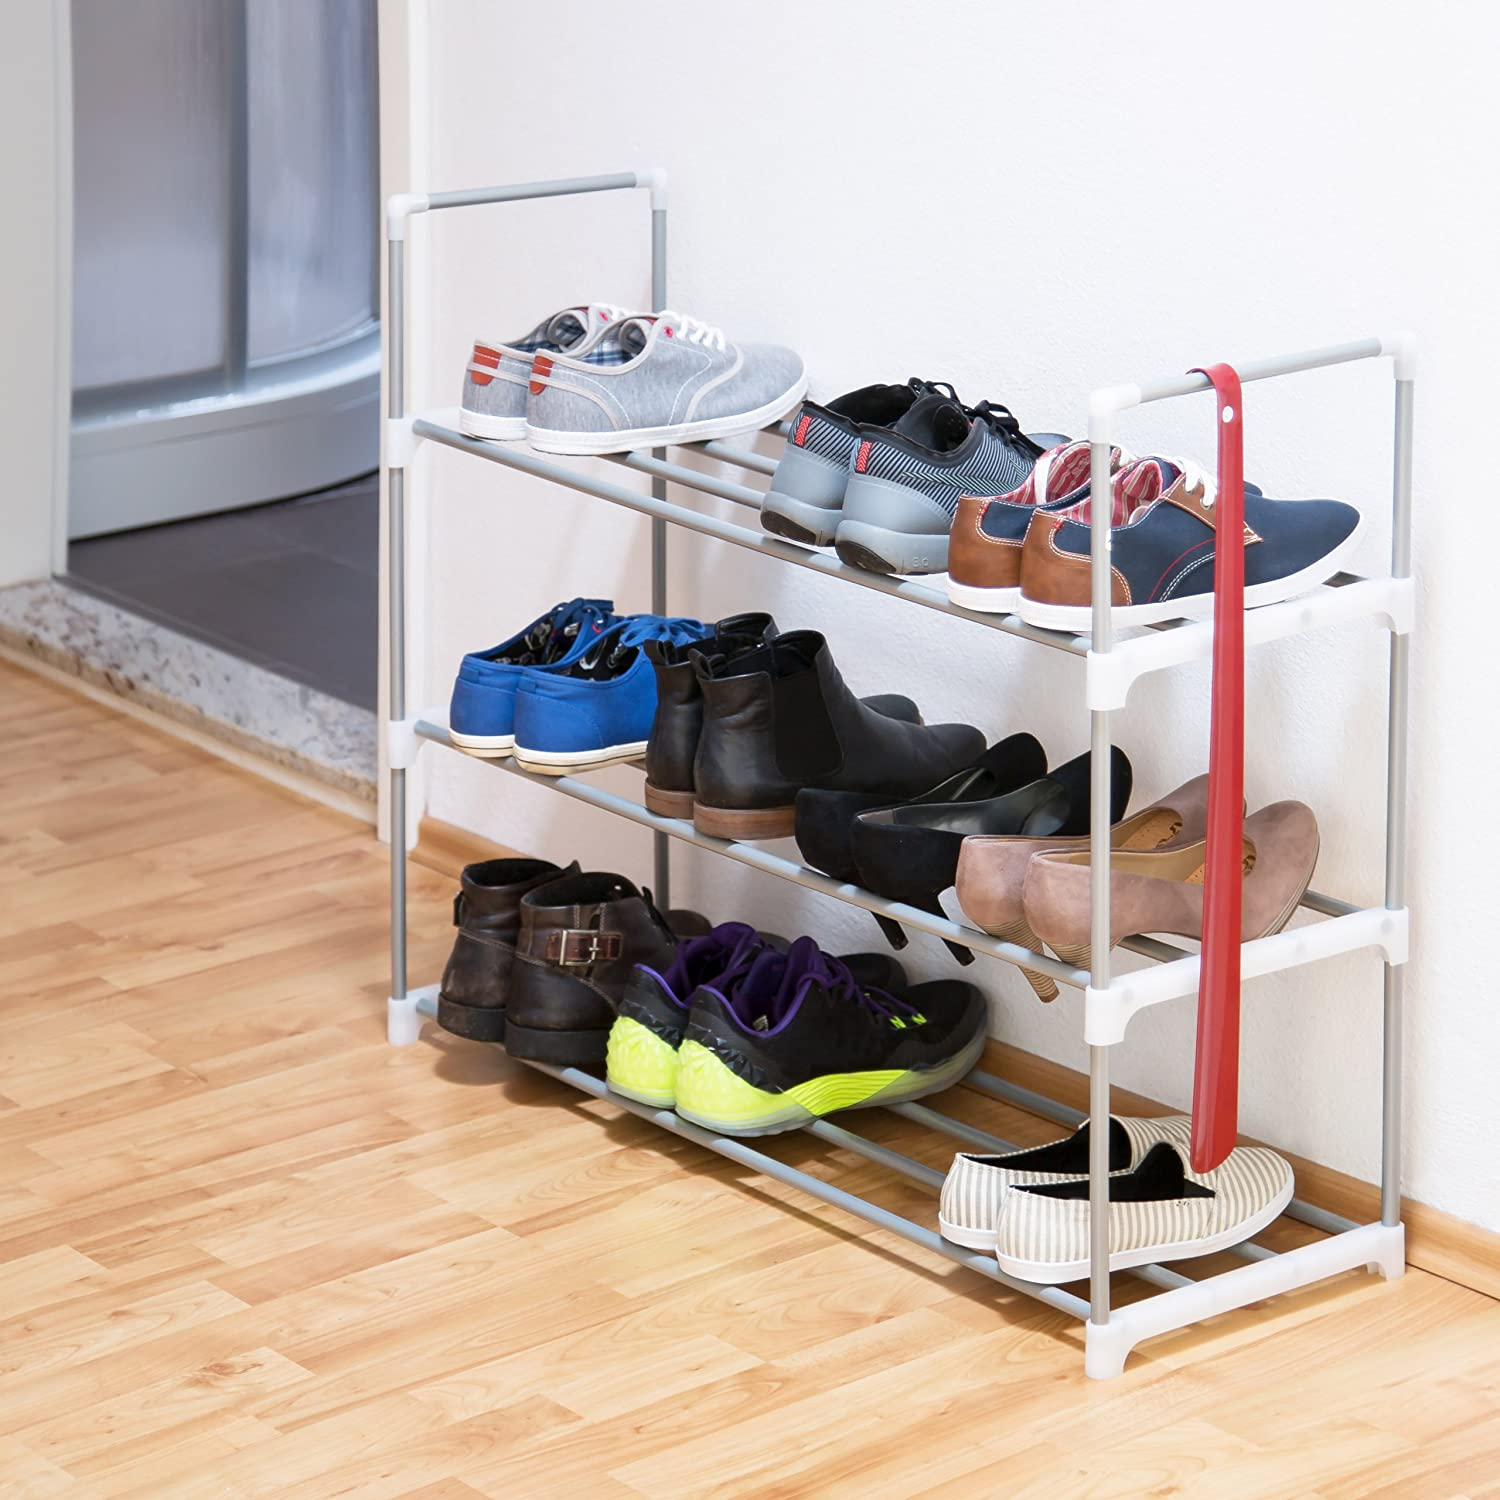 relaxdays shoe rack size 70 x 90 x 30 cm shoe storage made of metal with 3 levels 3 shelves as shoe holder and shoe stand for